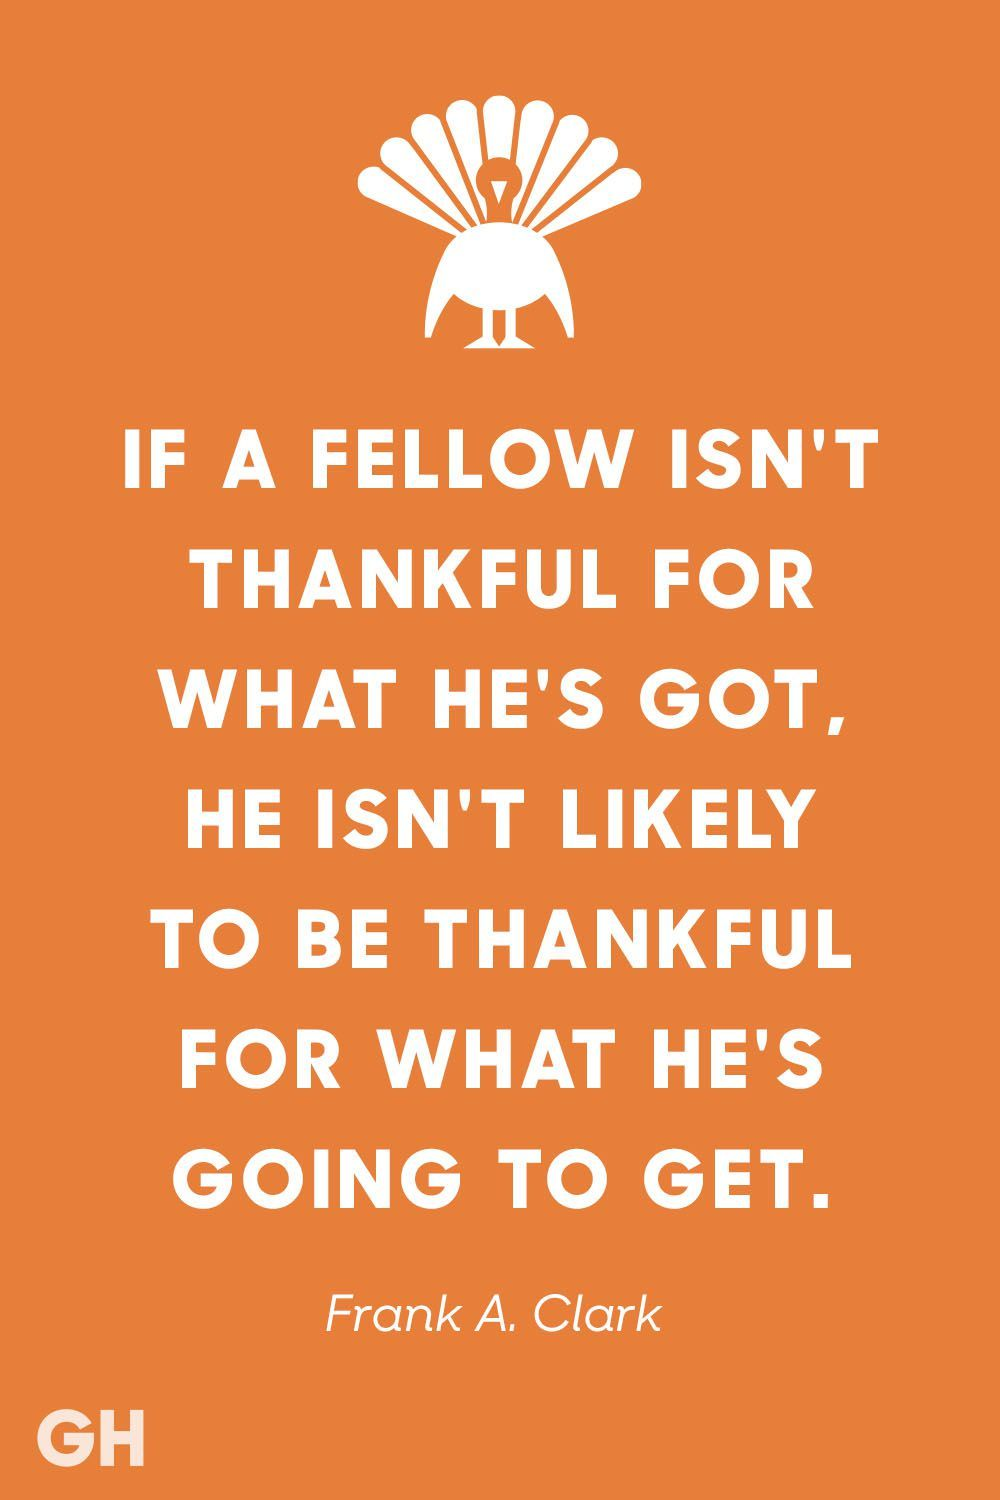 32 Best Thanksgiving Quotes to Share at Your Table